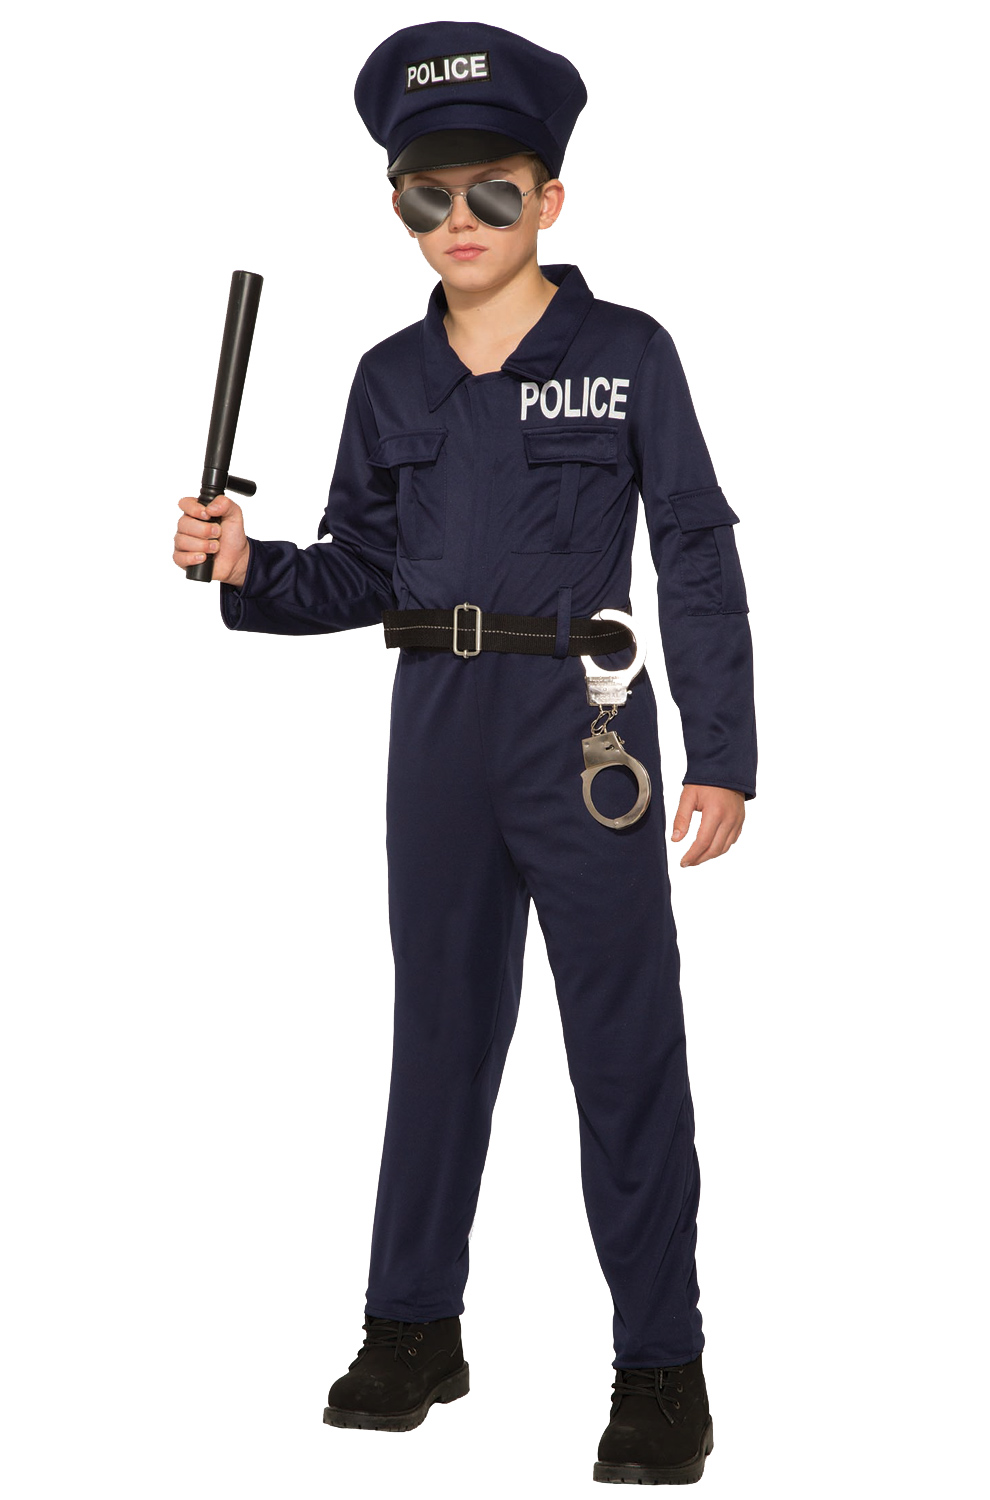 Brand New Police Jumpsuit Child Costume Small